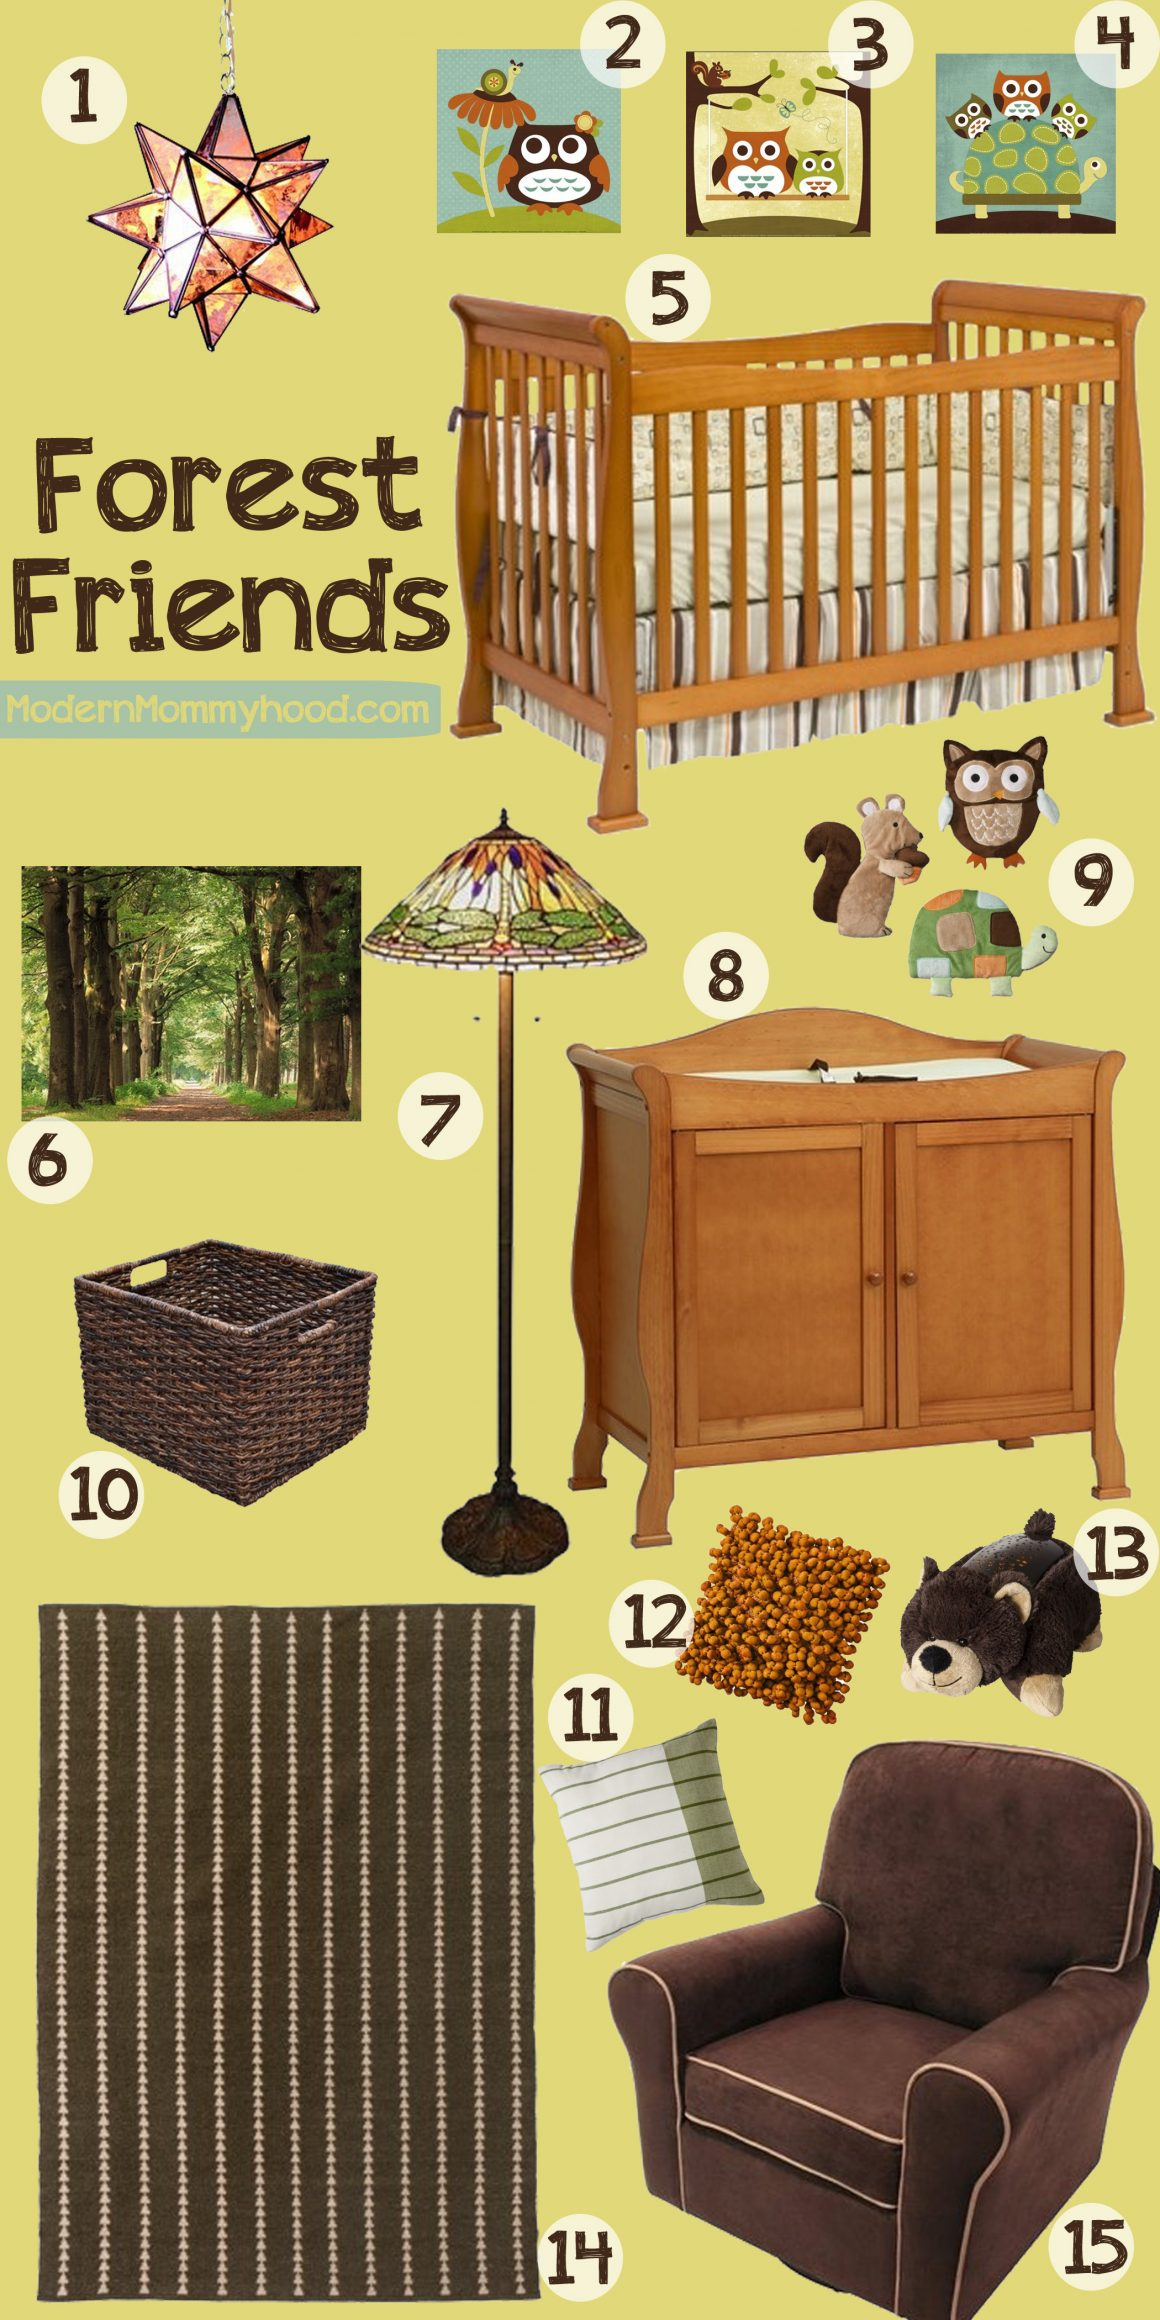 Forest Friends Nursery Decor for a little boy @ModernMommyhood